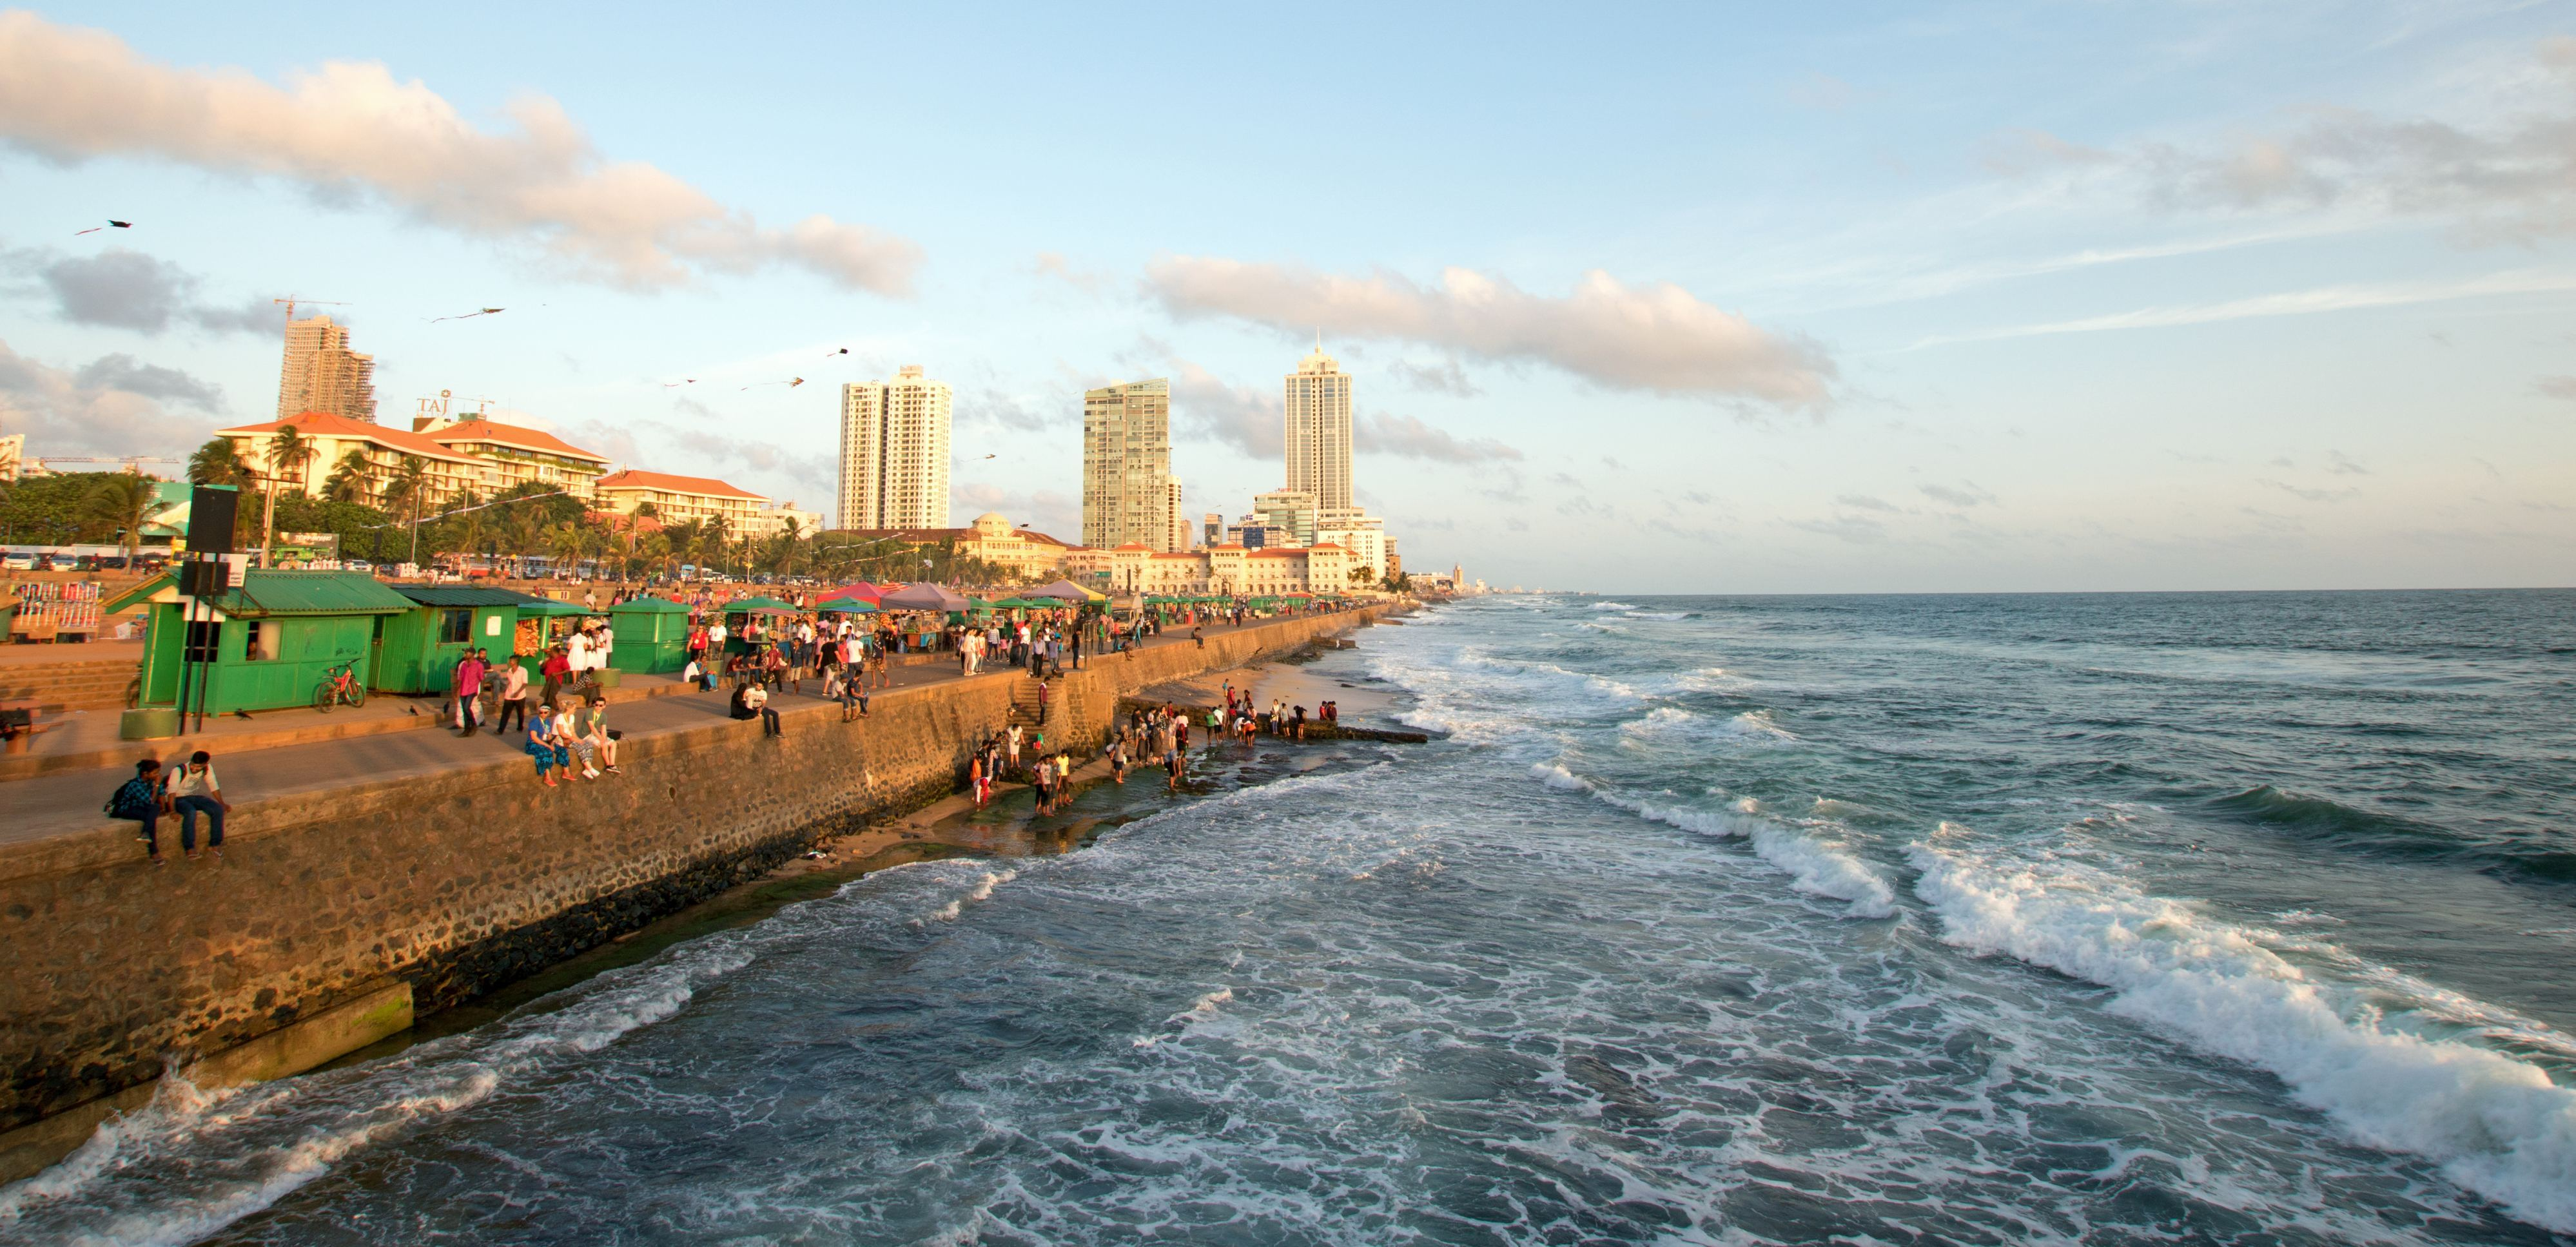 Galle Face beachfront urban park area in Colombo Sri Lanka